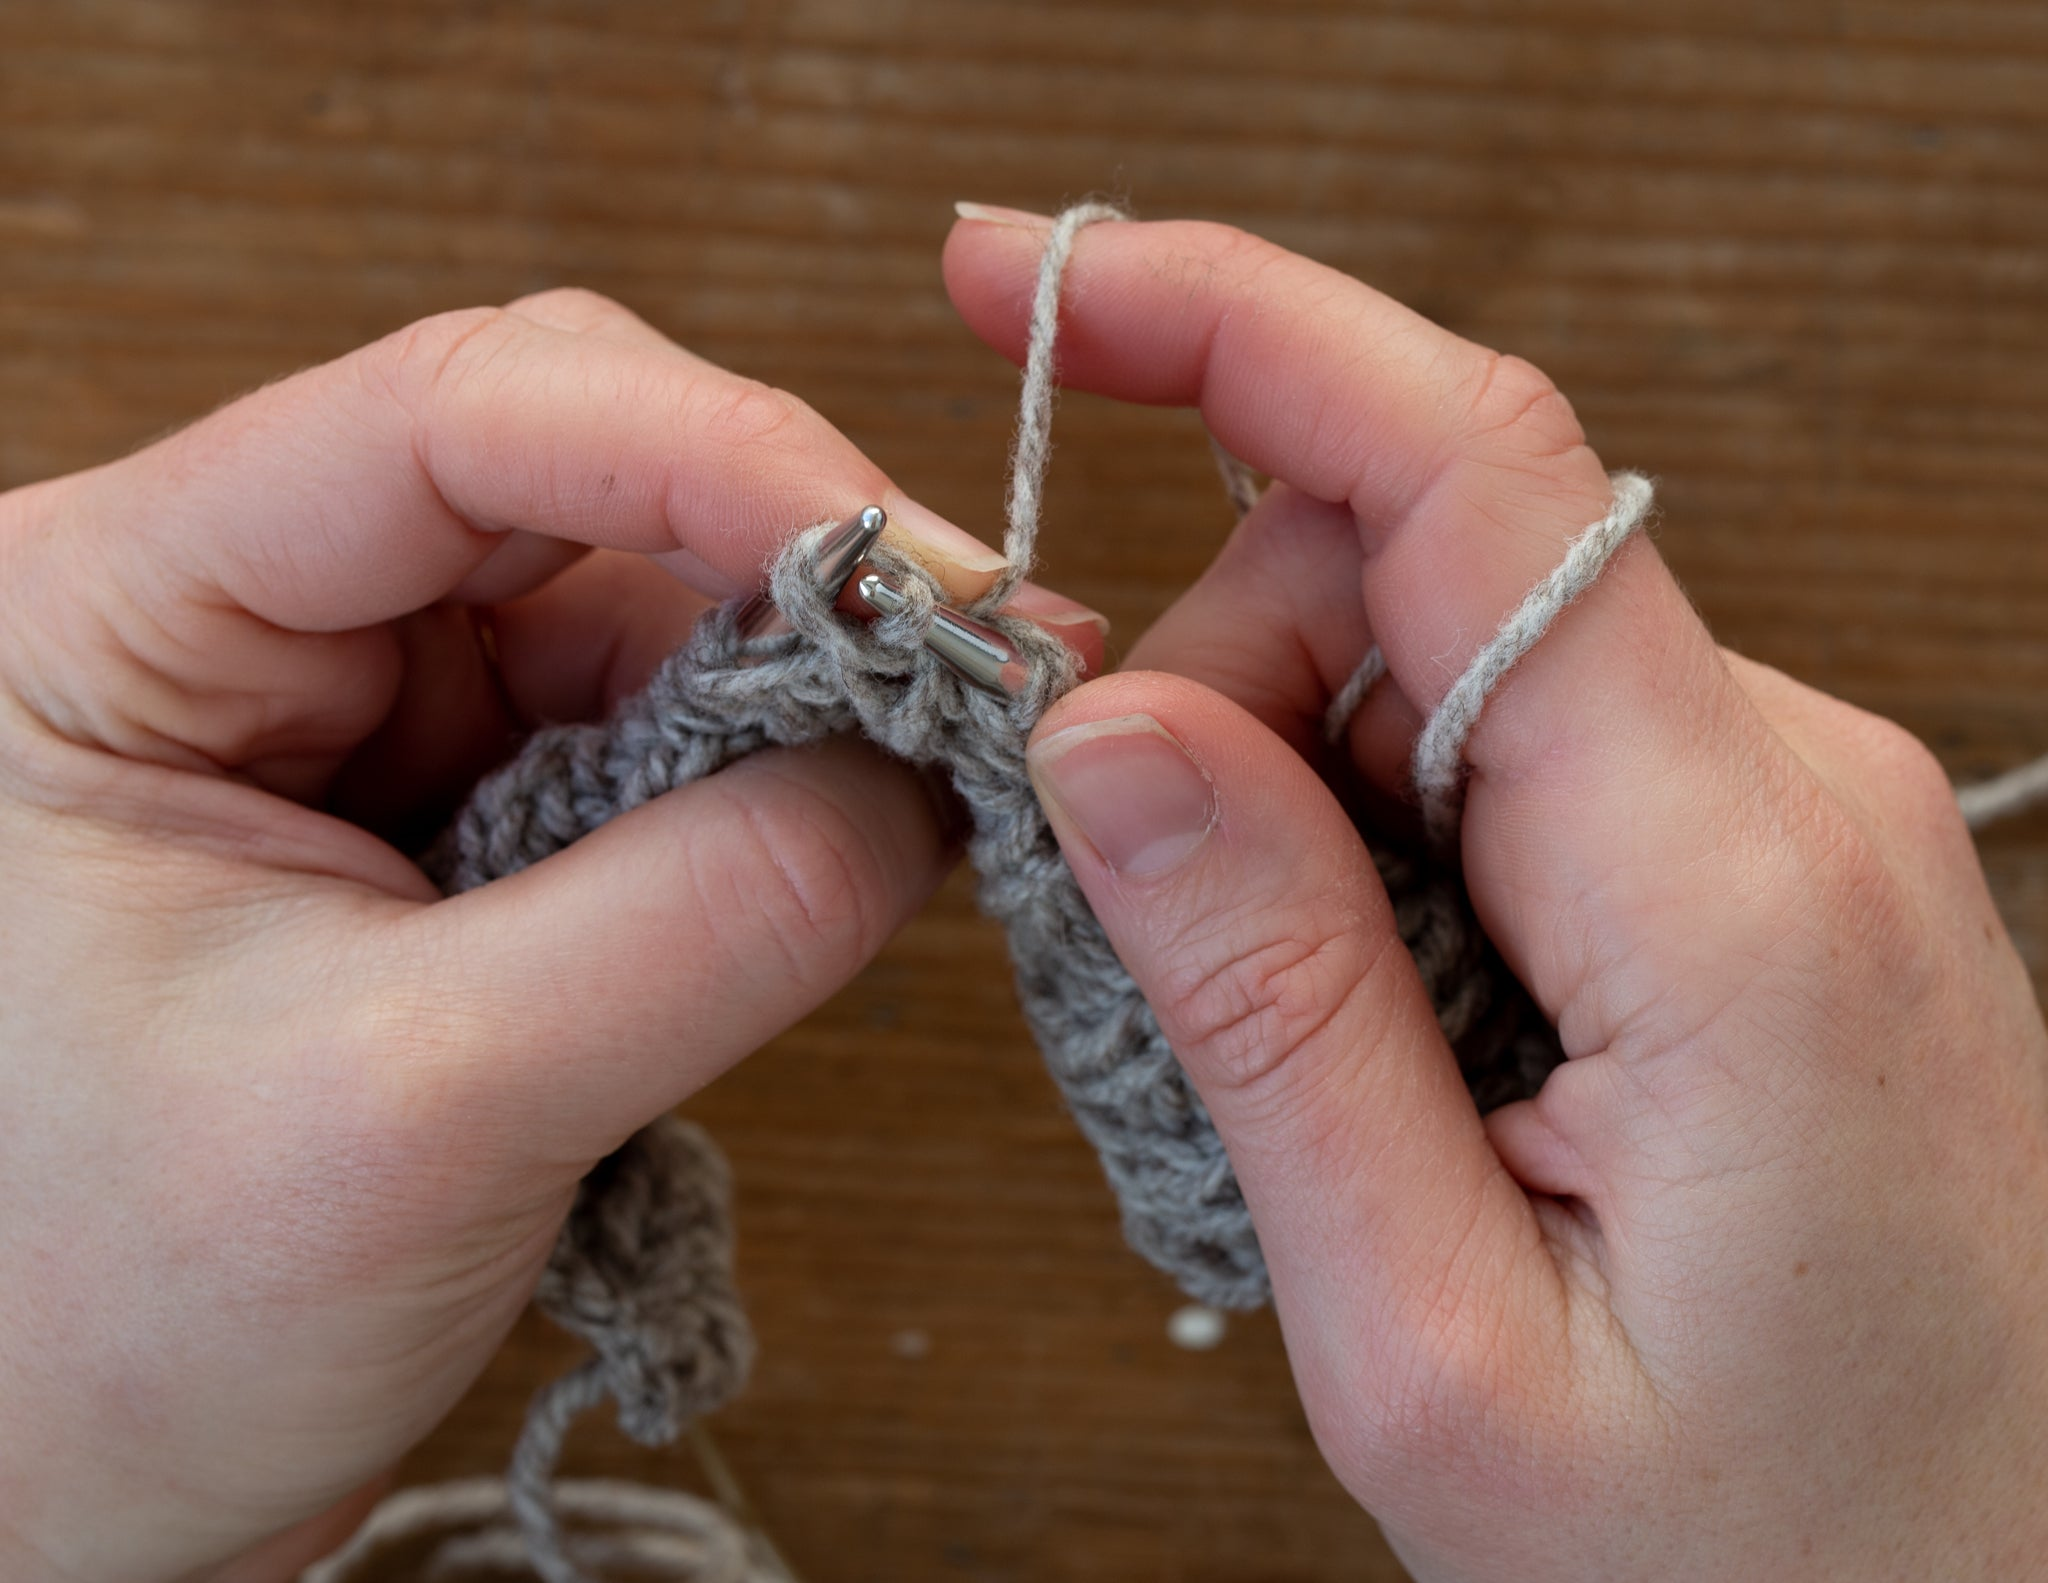 Knit the next stitch and pass the slipped stitch over it and off the needle.